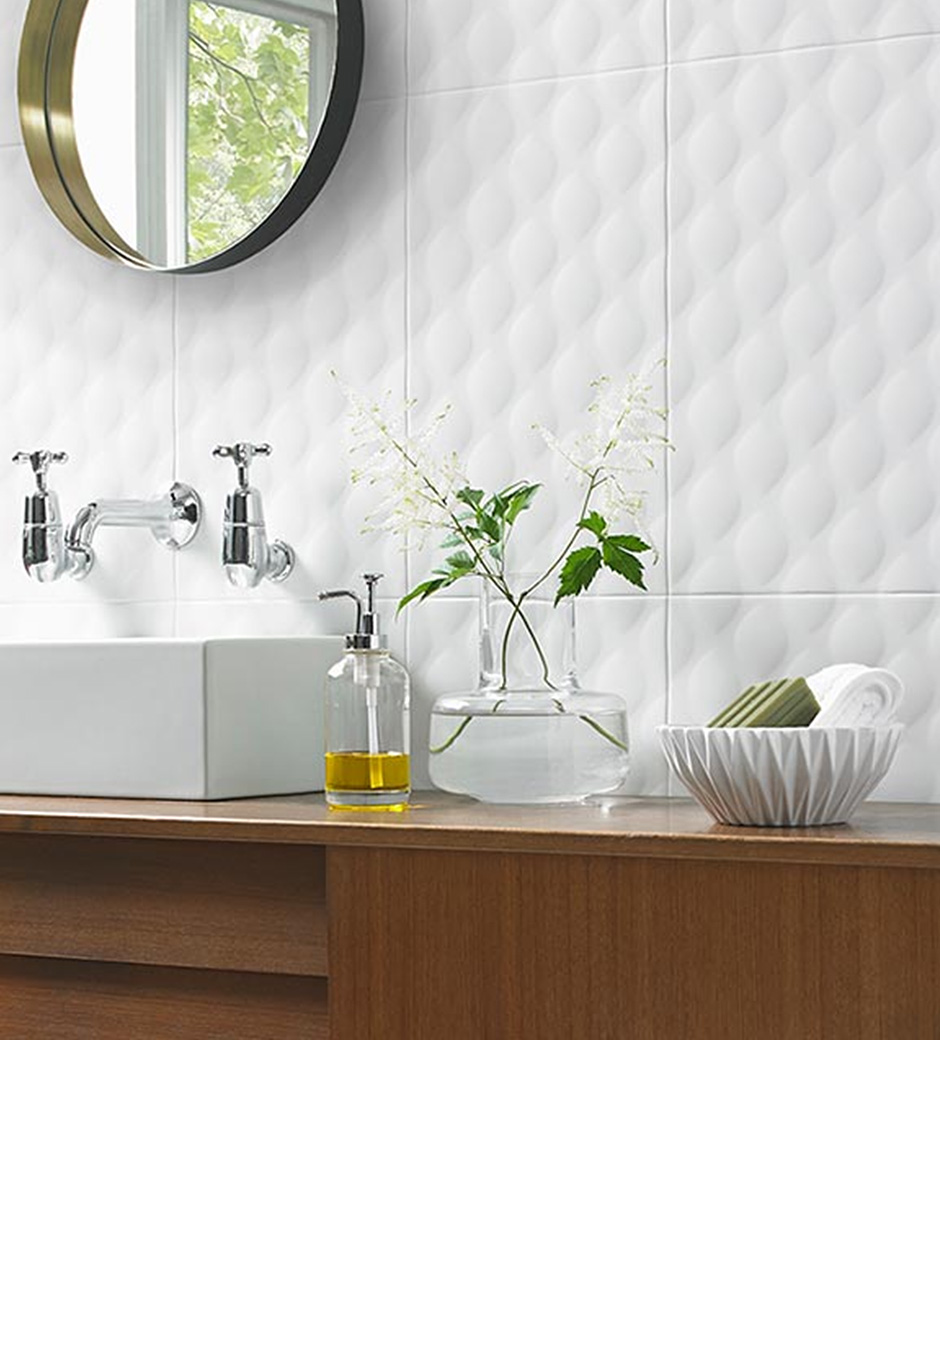 Ted baker tiles explore the collection british ceramic tile tactile dailygadgetfo Image collections